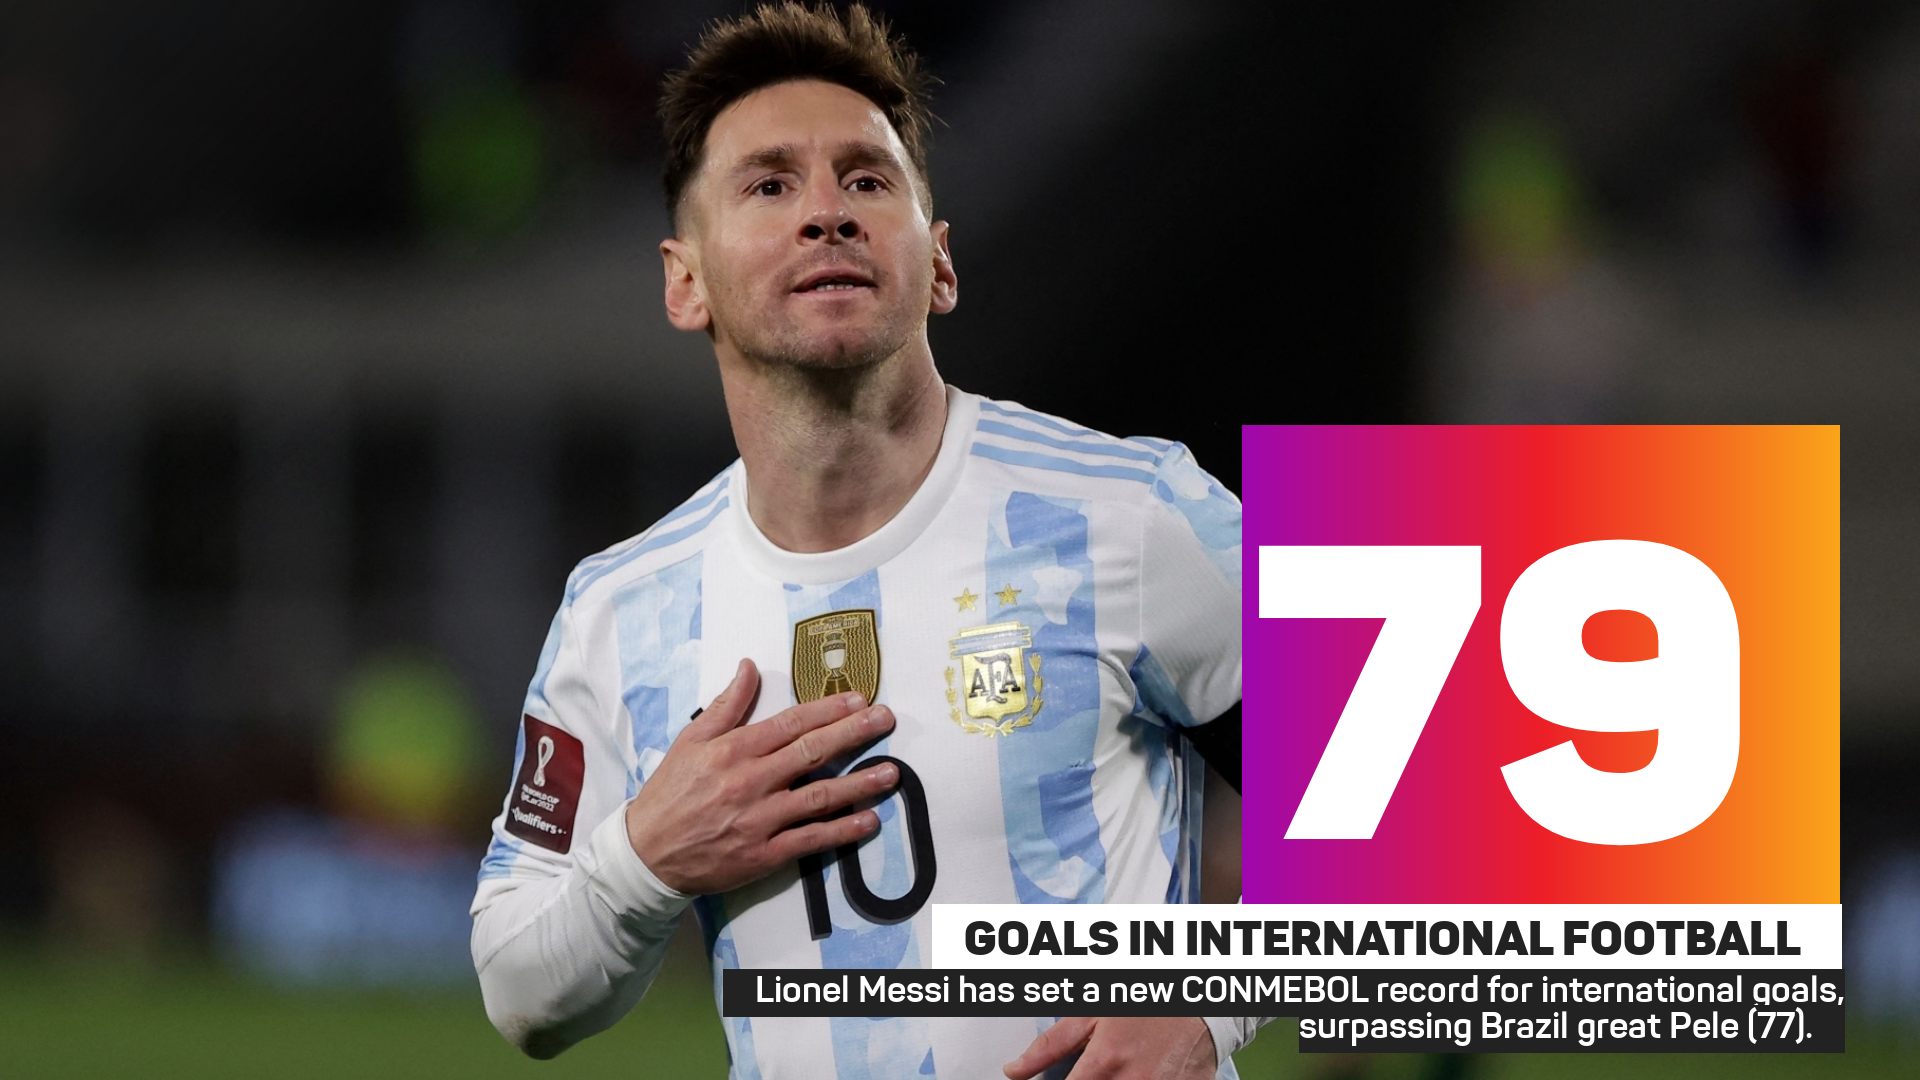 Lionel Messi has set a new CONMEBOL record for international goals, surpassing Brazil great Pele (77).